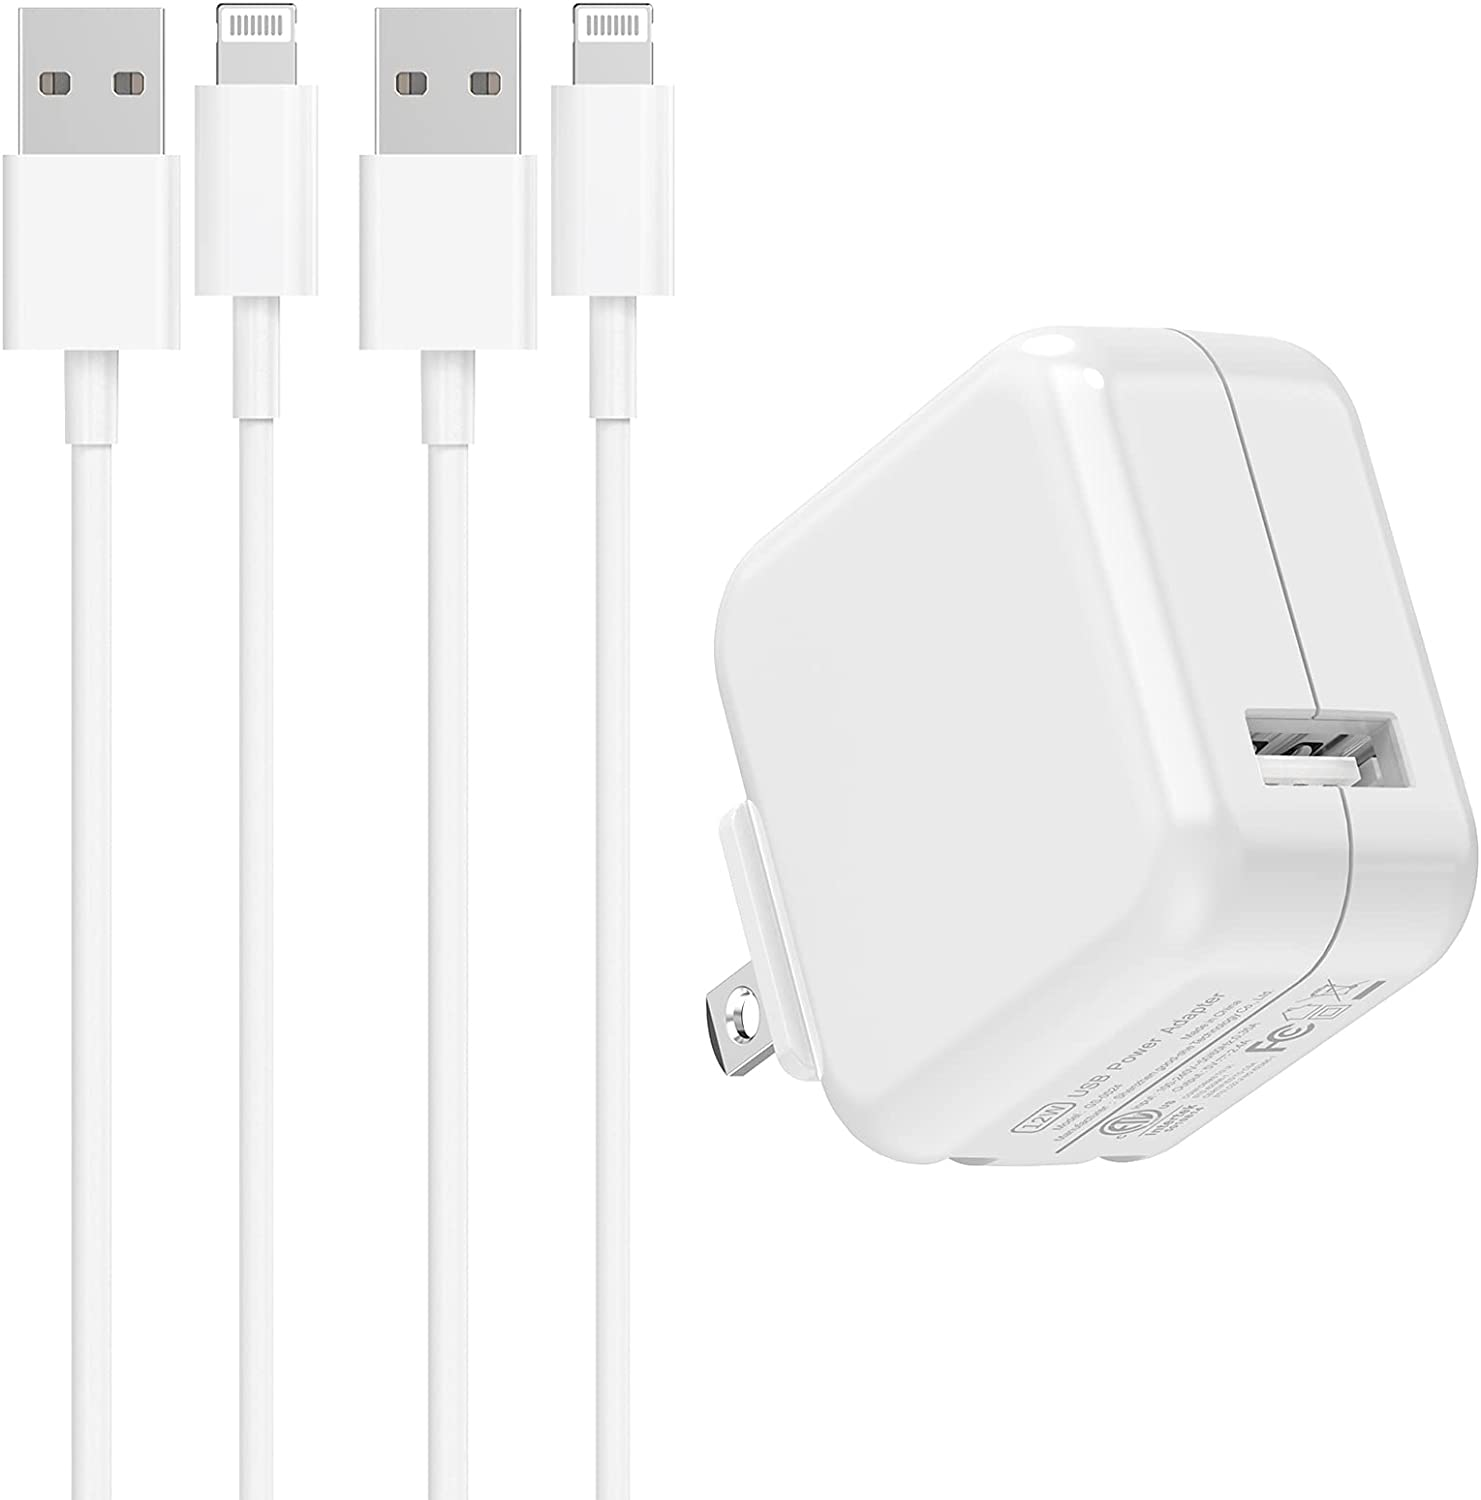 [Apple MFi Certified] iPad Charger, Veetone 2.4A 12W USB Power Rapid Wall Charger Foldable Portable Travel Plug&2 Pack 6.6FT Lightning to USB Fast Charge Data Sync Cord for iPhone 12/11/XS/XR/X 8/iPad